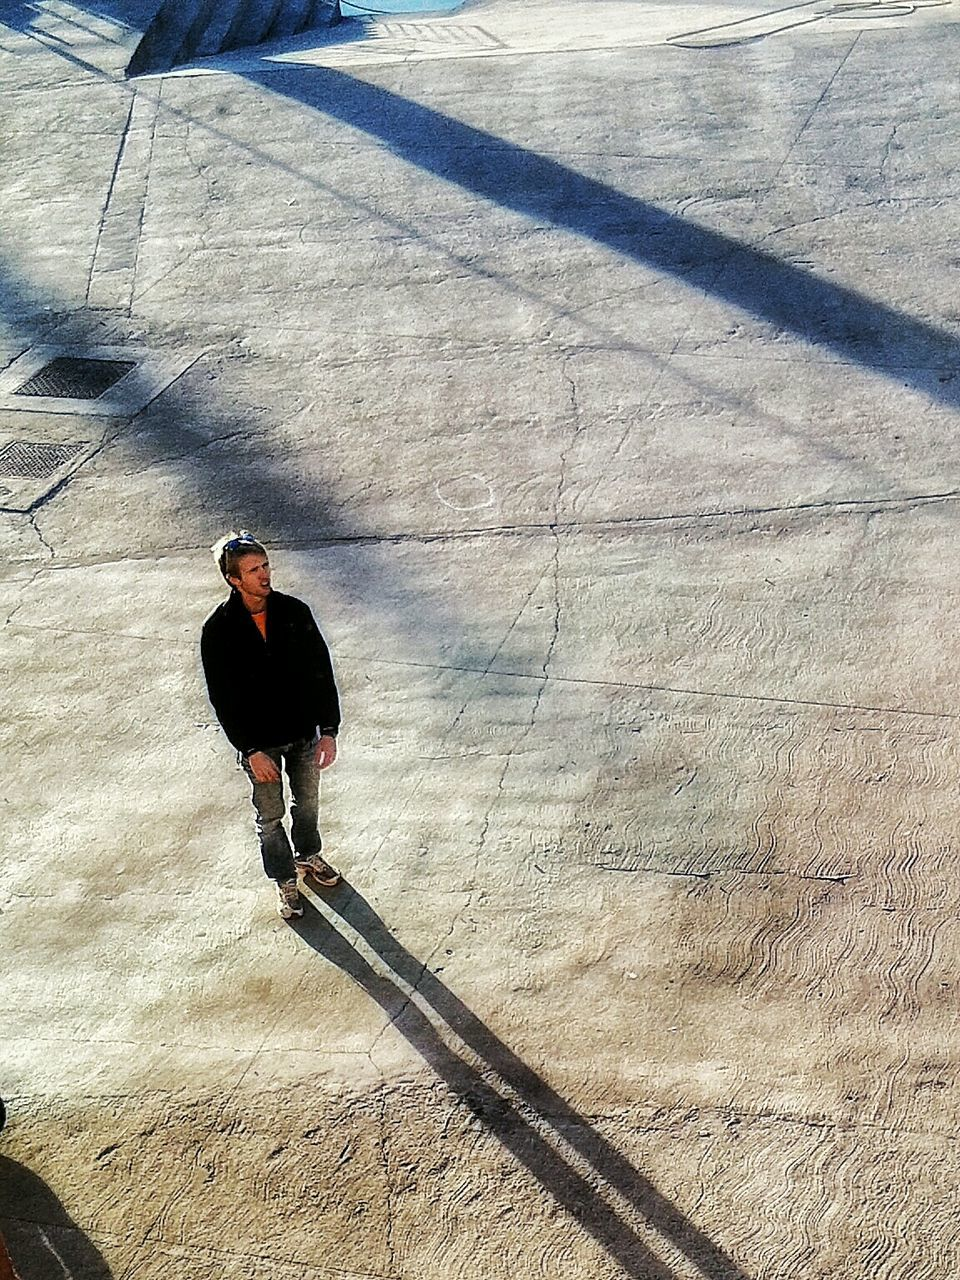 one person, shadow, full length, day, high angle view, leisure activity, sunlight, one man only, lifestyles, outdoors, only men, skill, sport, real people, skateboard park, young adult, adult, men, adults only, sportsman, people